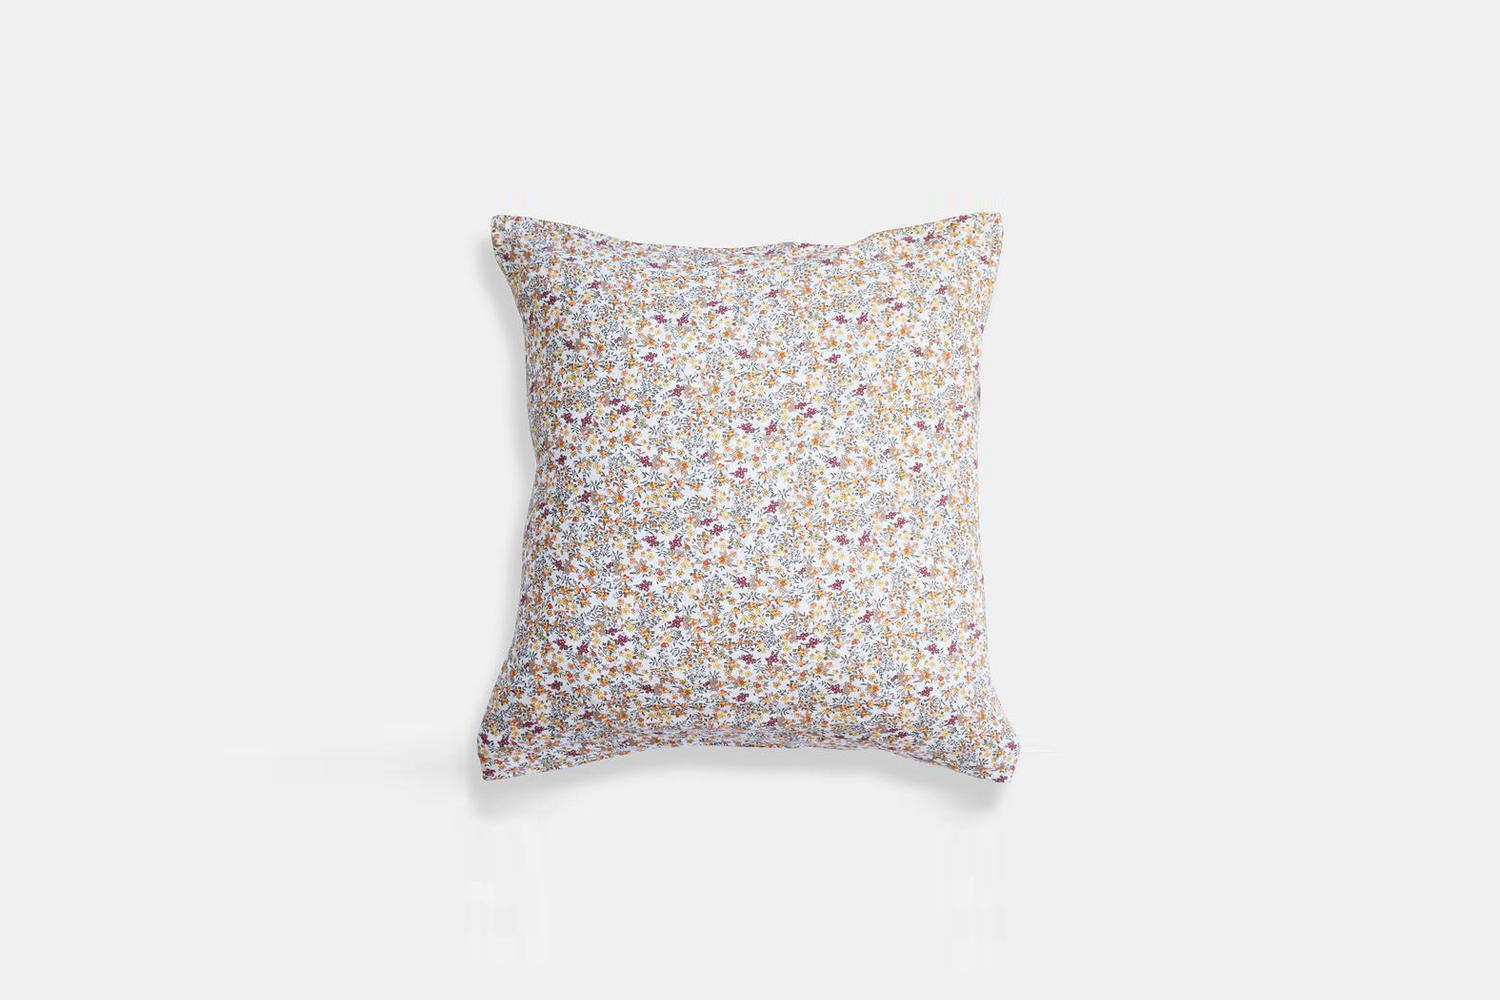 the ligne particulier curry flowers linen euro pillowcase is \$65 at collyer&am 18